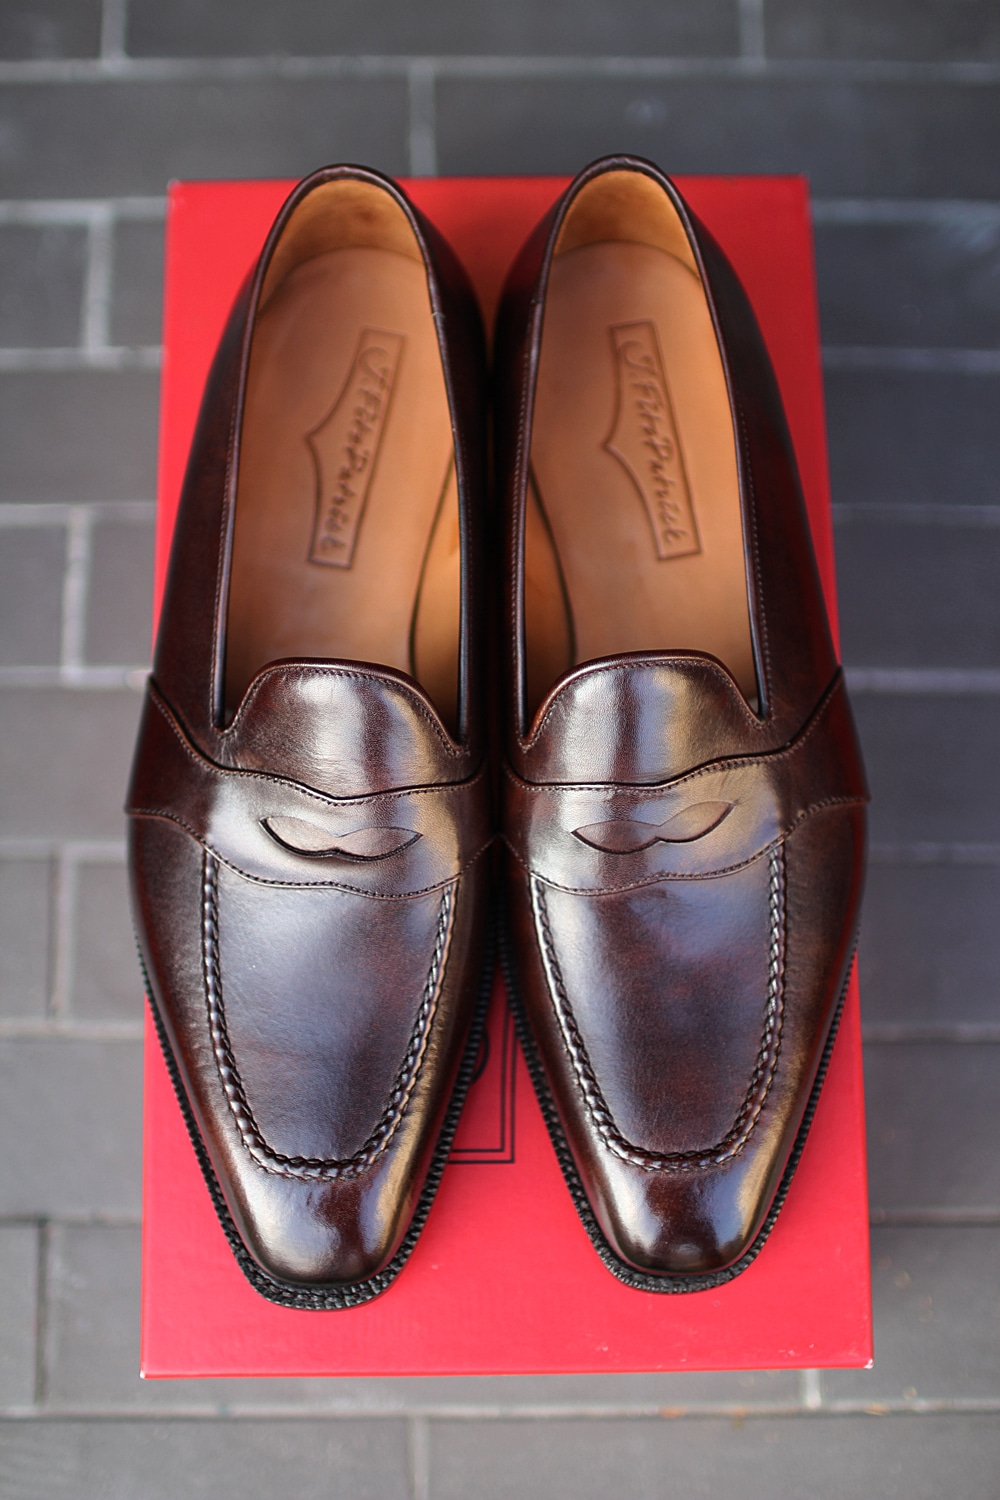 Penny loafer Brown MADISONJ.fitz patrick(제이피츠패트릭)